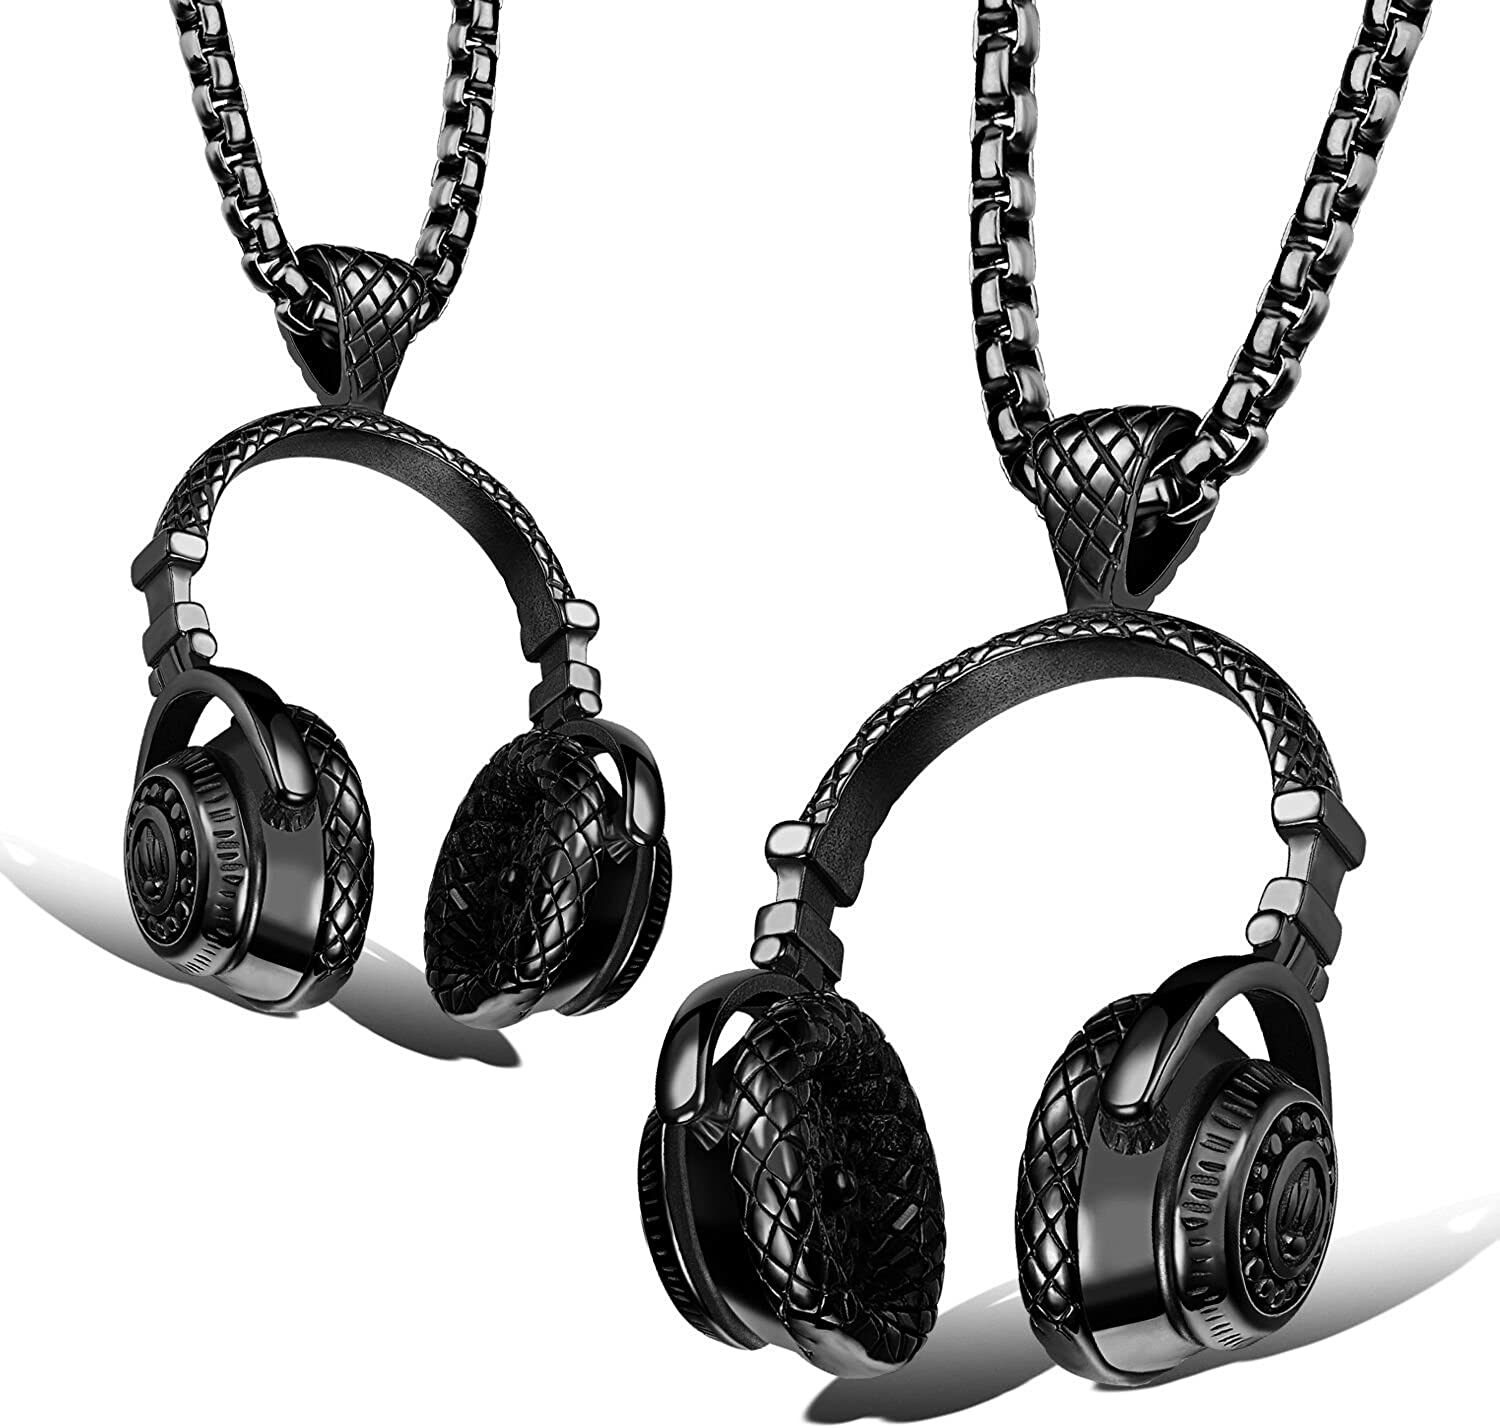 BeautySalon Hip Hop DJ Wireless Headphone Design Mens Stainless Steel Pendant Necklace